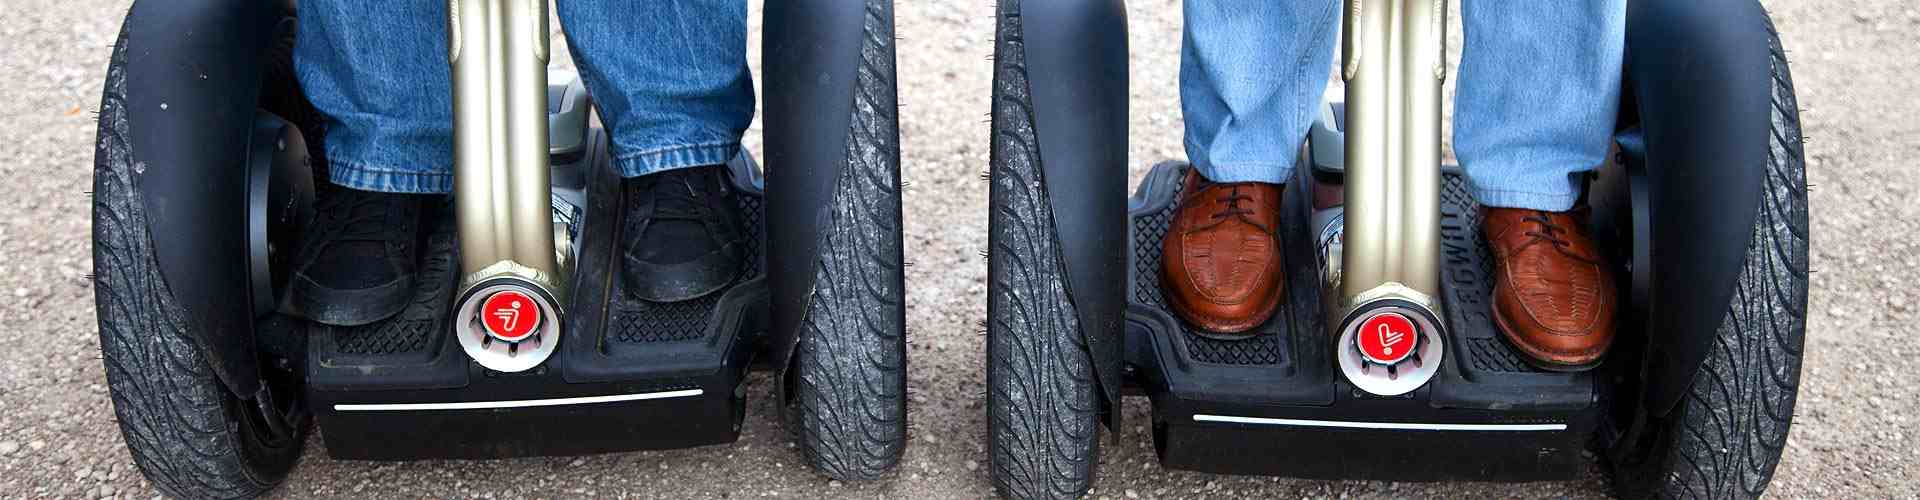 Segway en Los Beatos